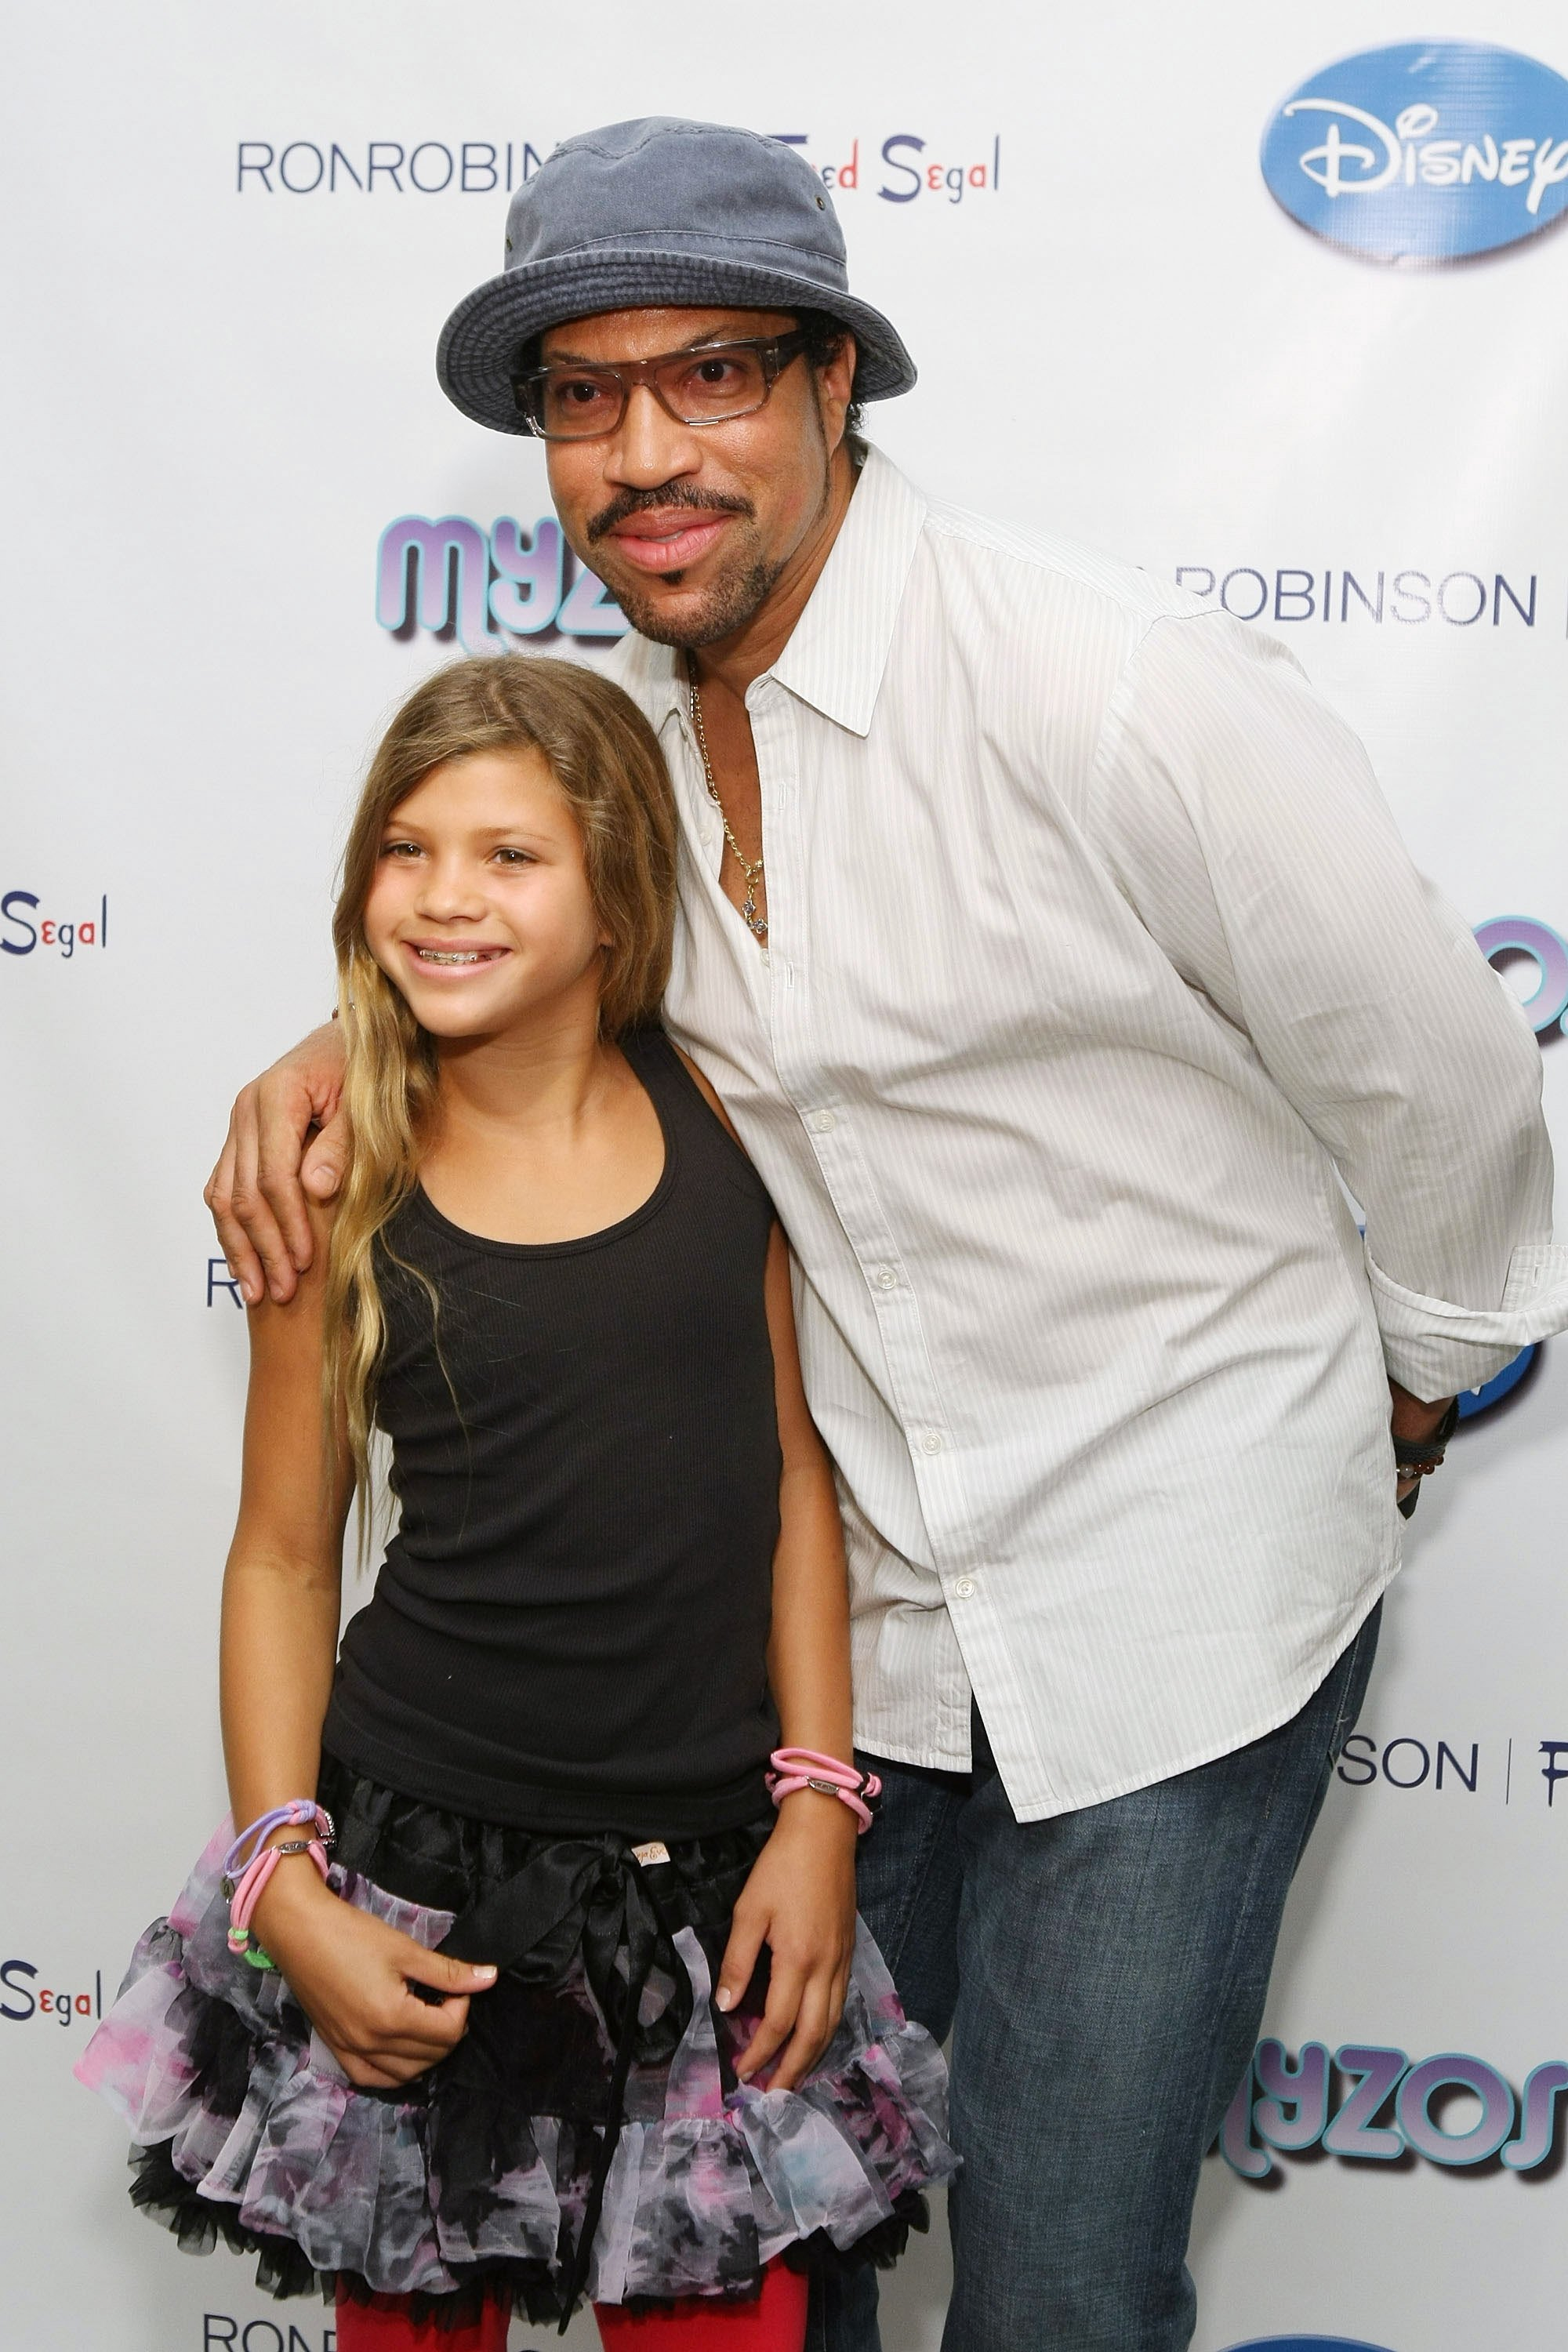 Throwback picture of Lionel Richie and his daughter Sofia Richie on August 22, 2009 in Santa Monica, California. | Source: Kristian Dowling/Getty Images